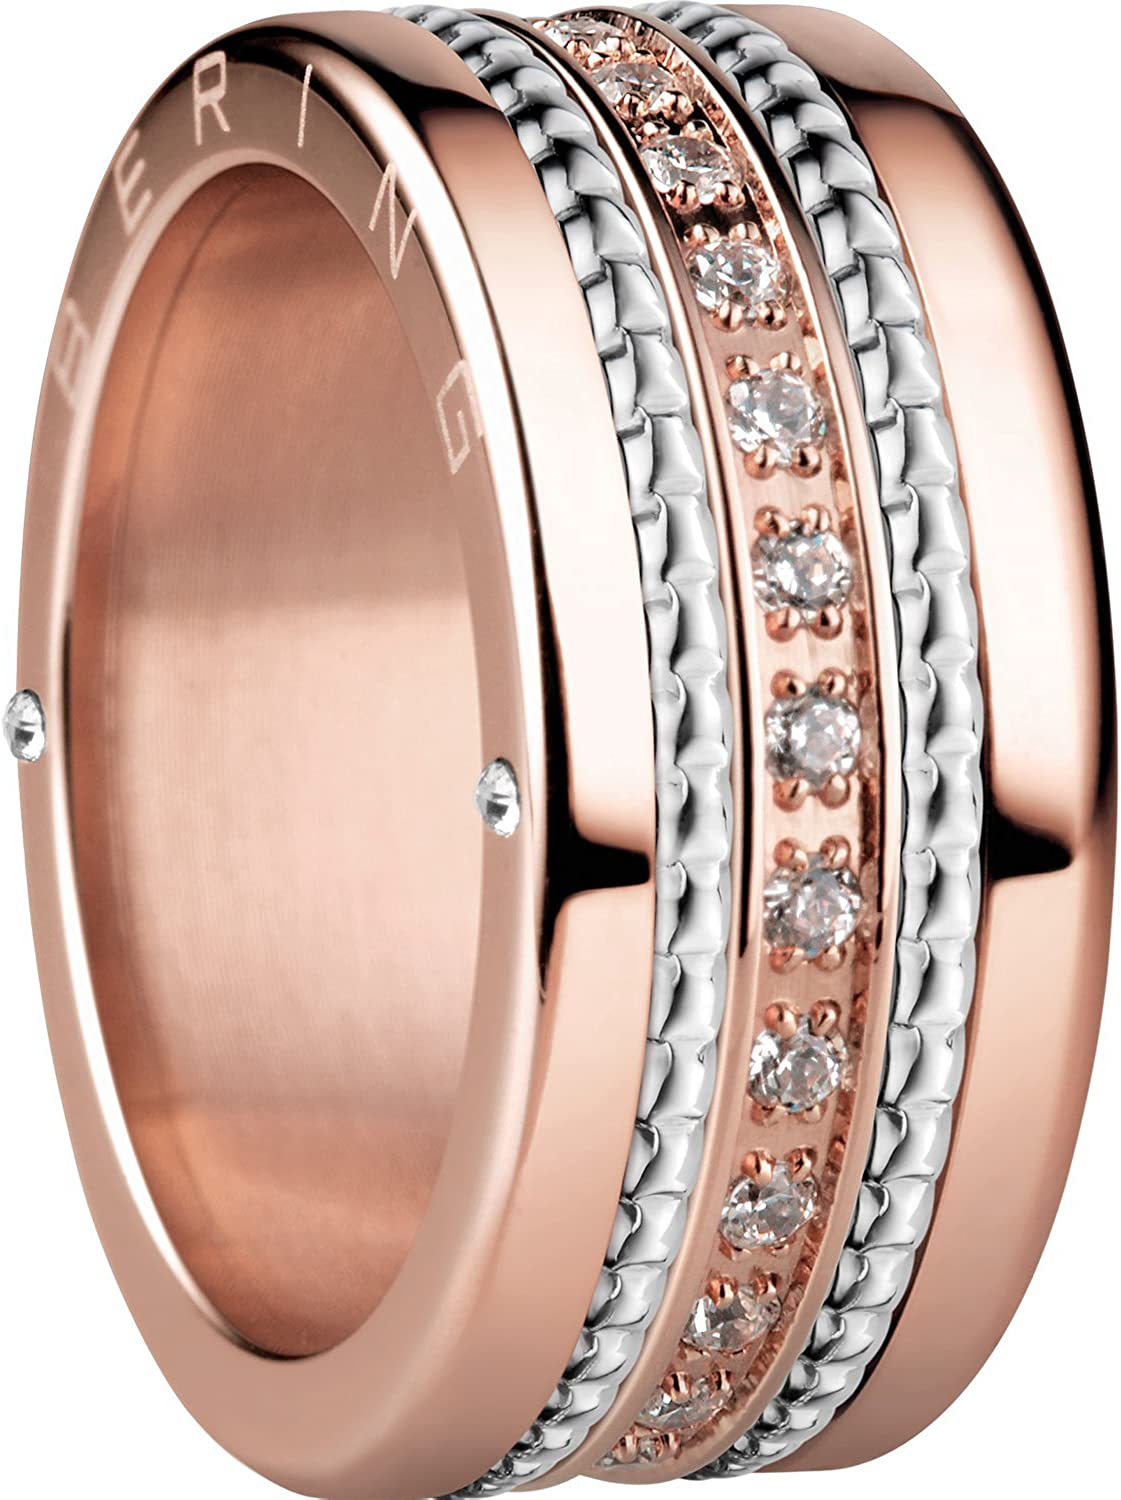 BERING Women's Ring Combination -Melbourne. Interchangeable Mix & Match Rings from The Arctic Symphony Collection. Designed in Denmark.